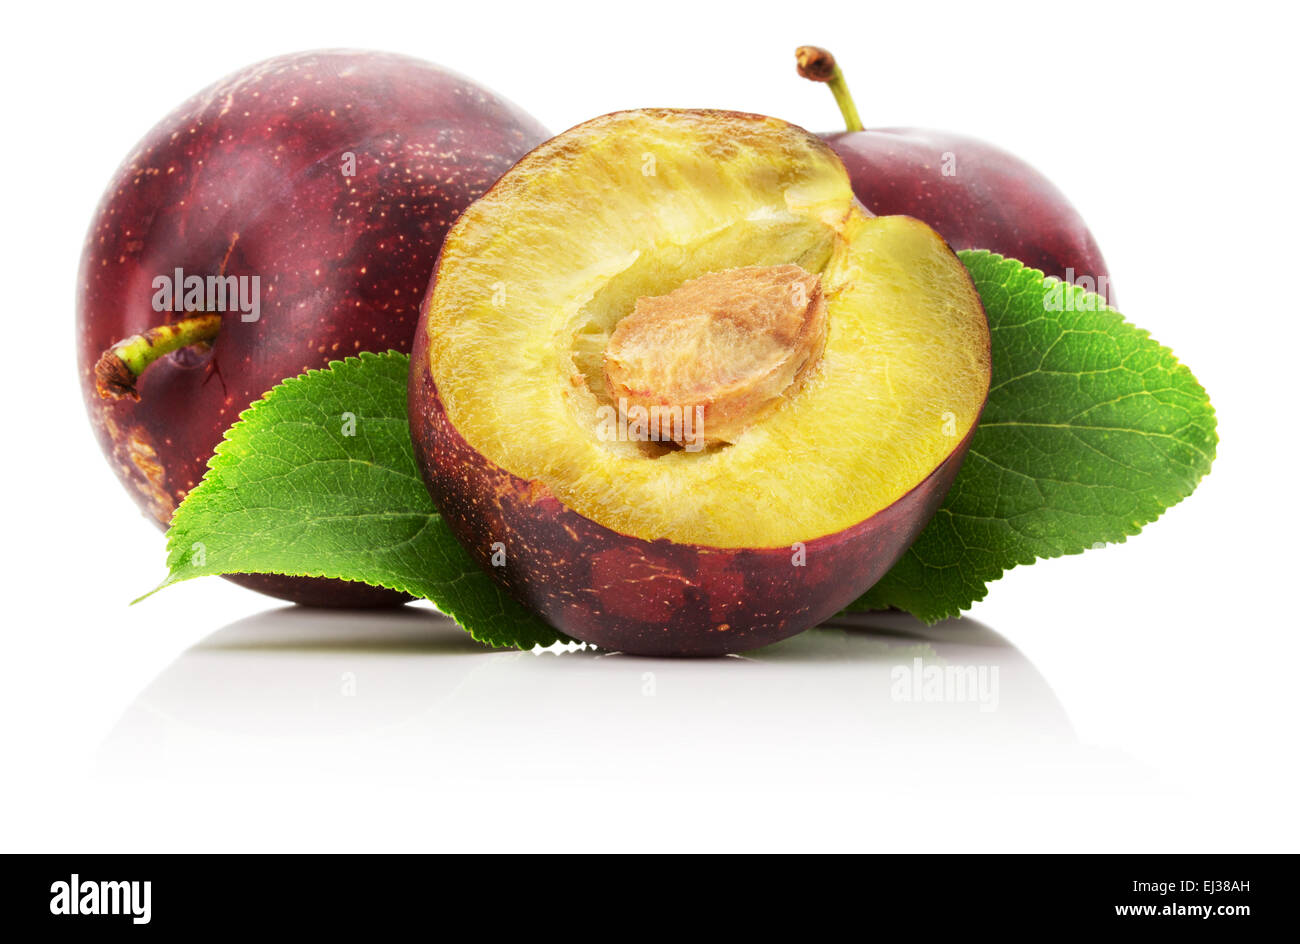 juicy plump with slice isolated on the white background. - Stock Image